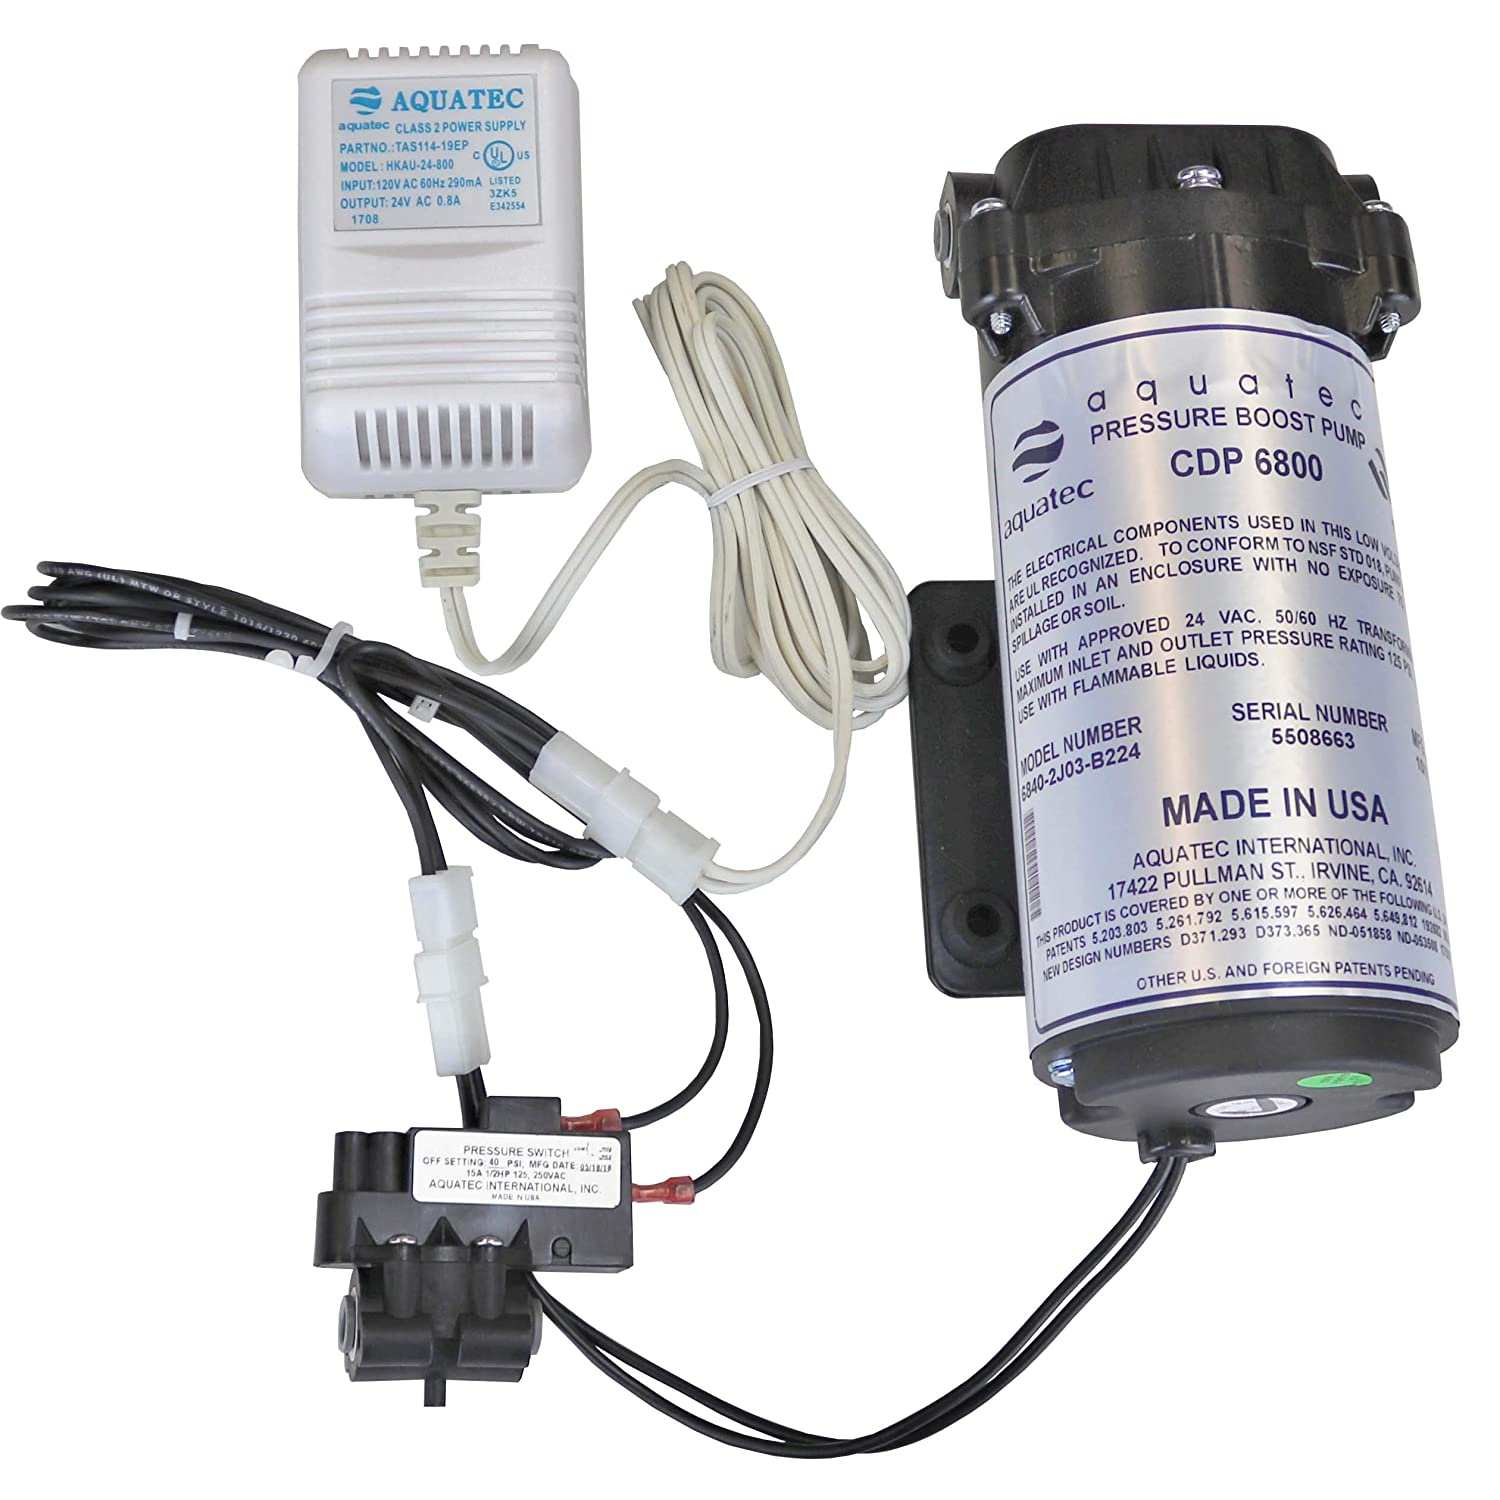 Aquatec 6800 Booster Pump Kit for up to 100 GPD home RO reverse osmosis water filter system Standard or Manifold, includes pump, pressure switch PSW-240, transformer, 6840-2J03-B224 B221 Made In USA